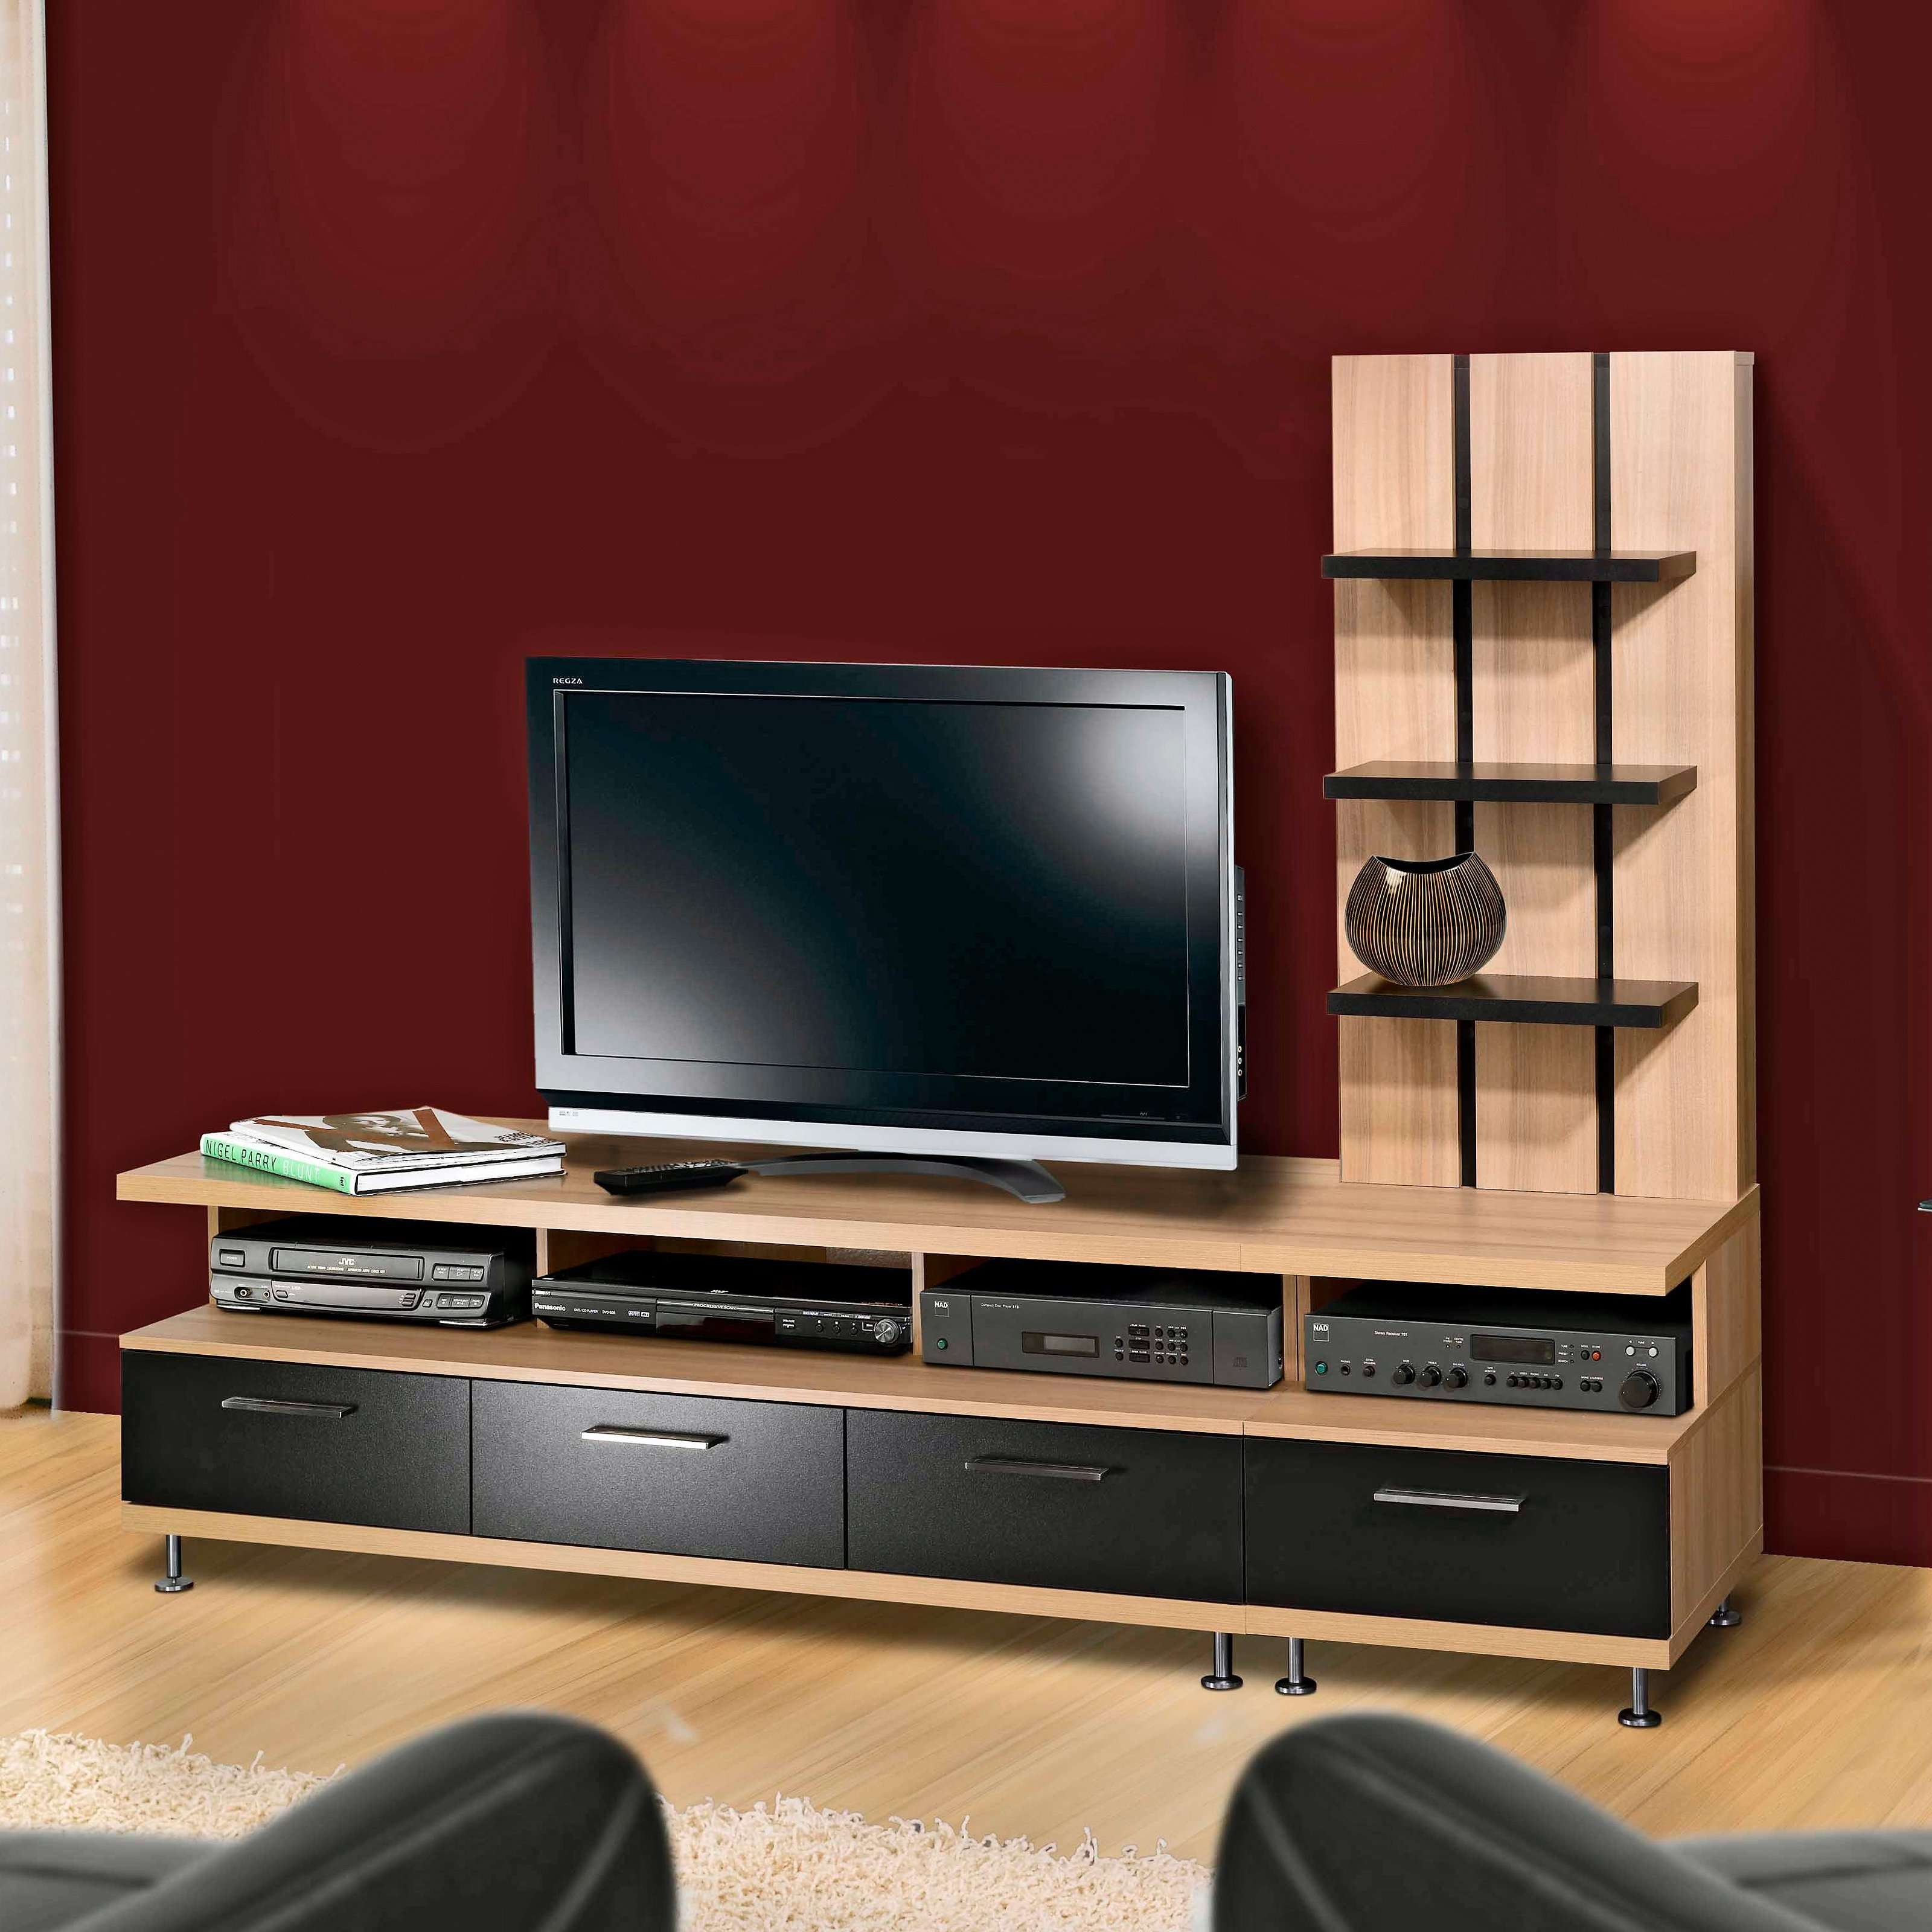 Congenial Brown Wood Together With Floating Tv Stand Living Room Throughout Contemporary Tv Cabinets For Flat Screens (View 5 of 20)